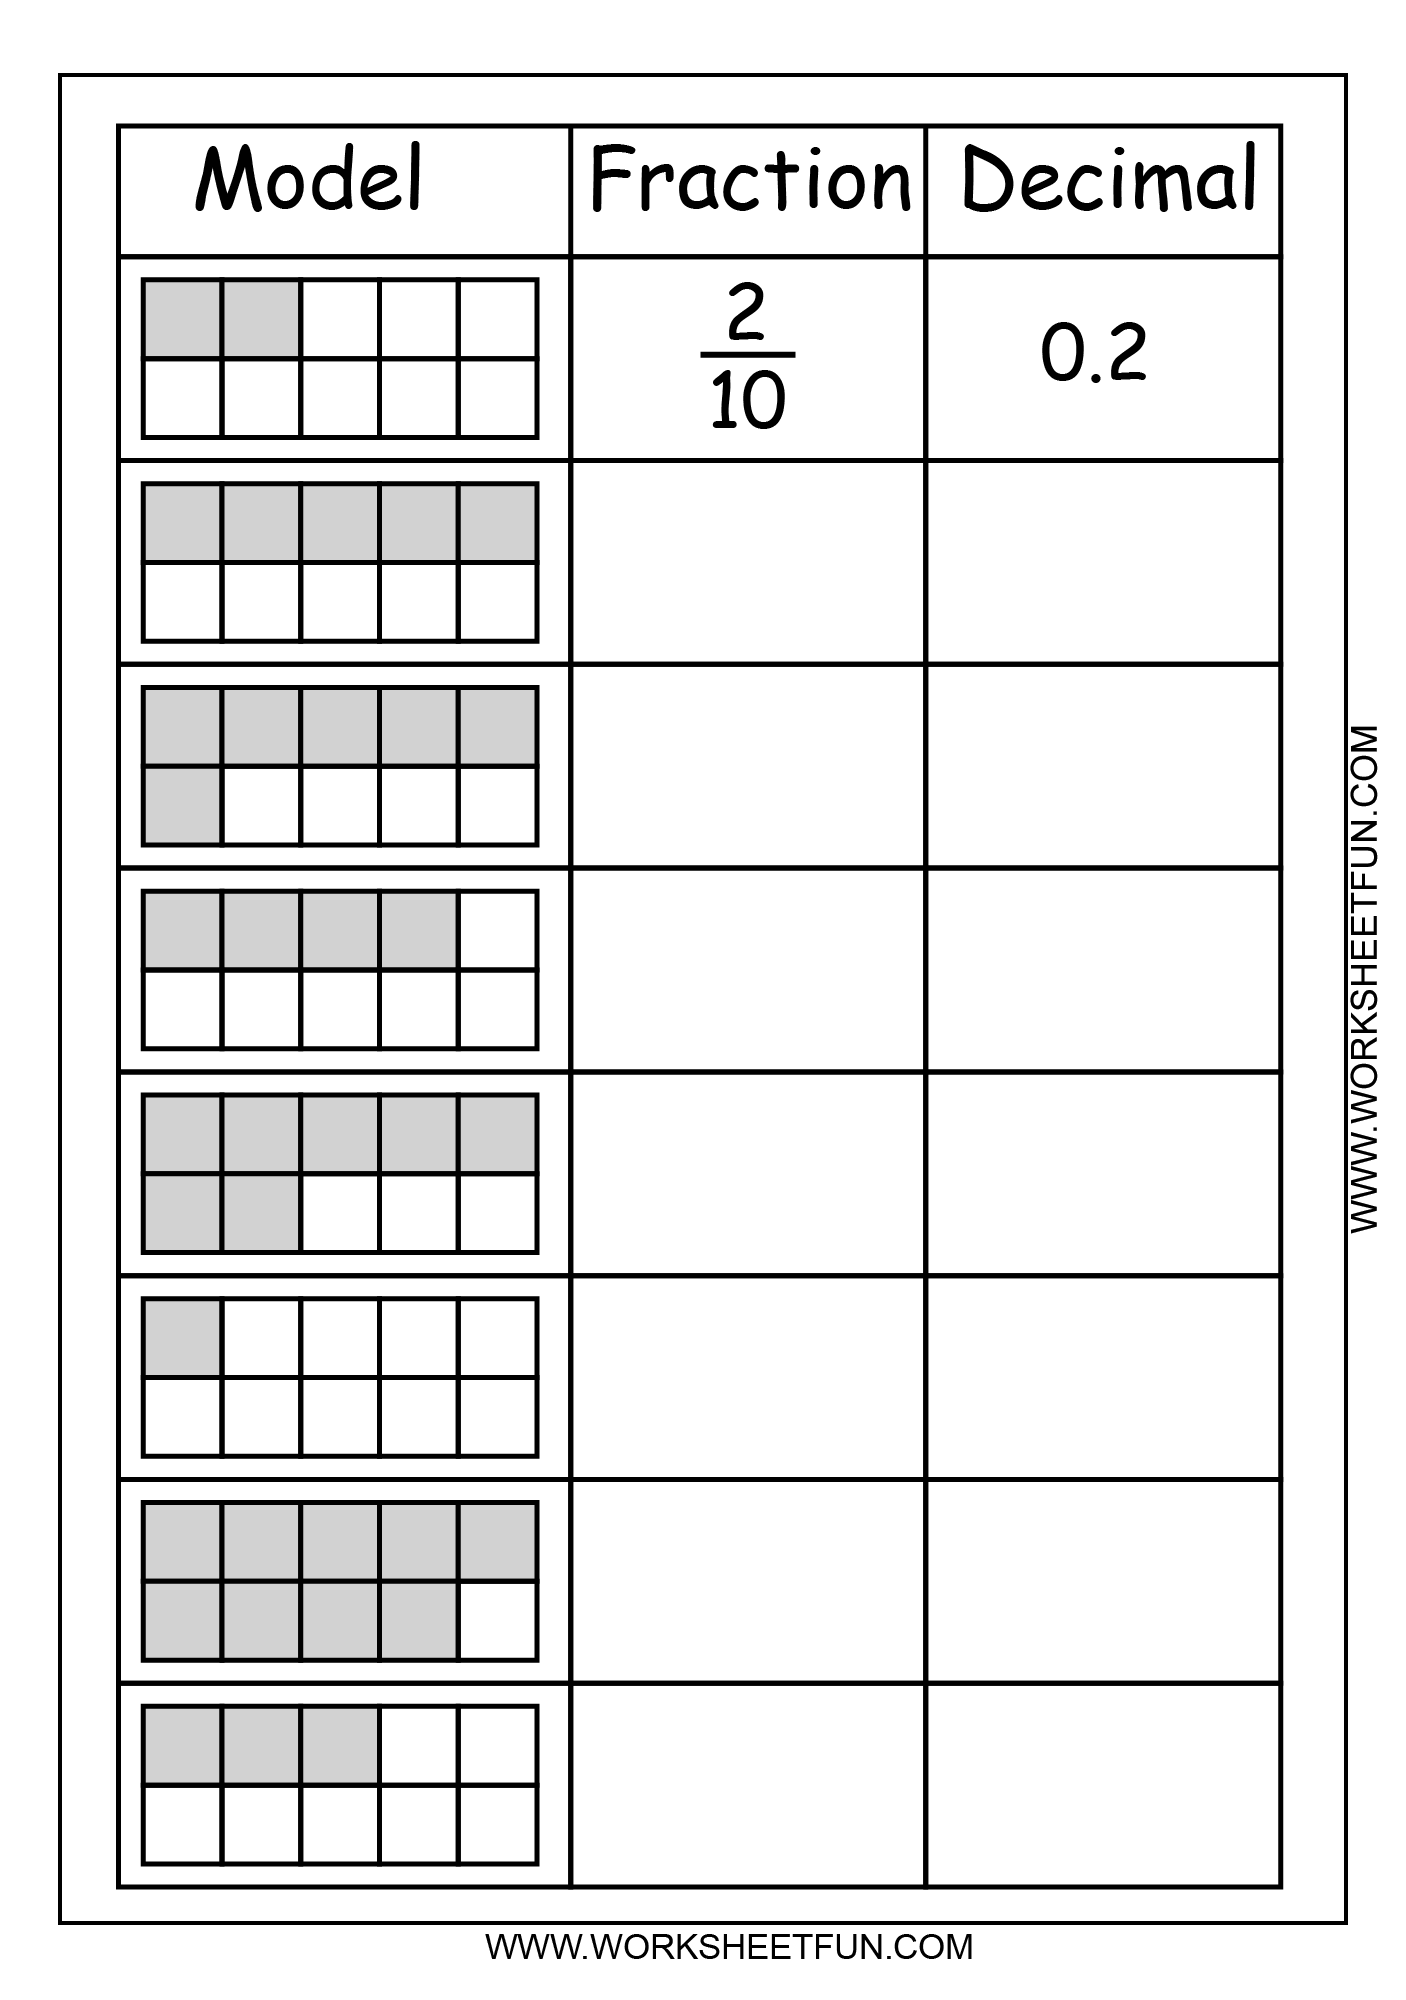 Model fraction decimal Printable Worksheets – Decimal to Fraction Worksheets